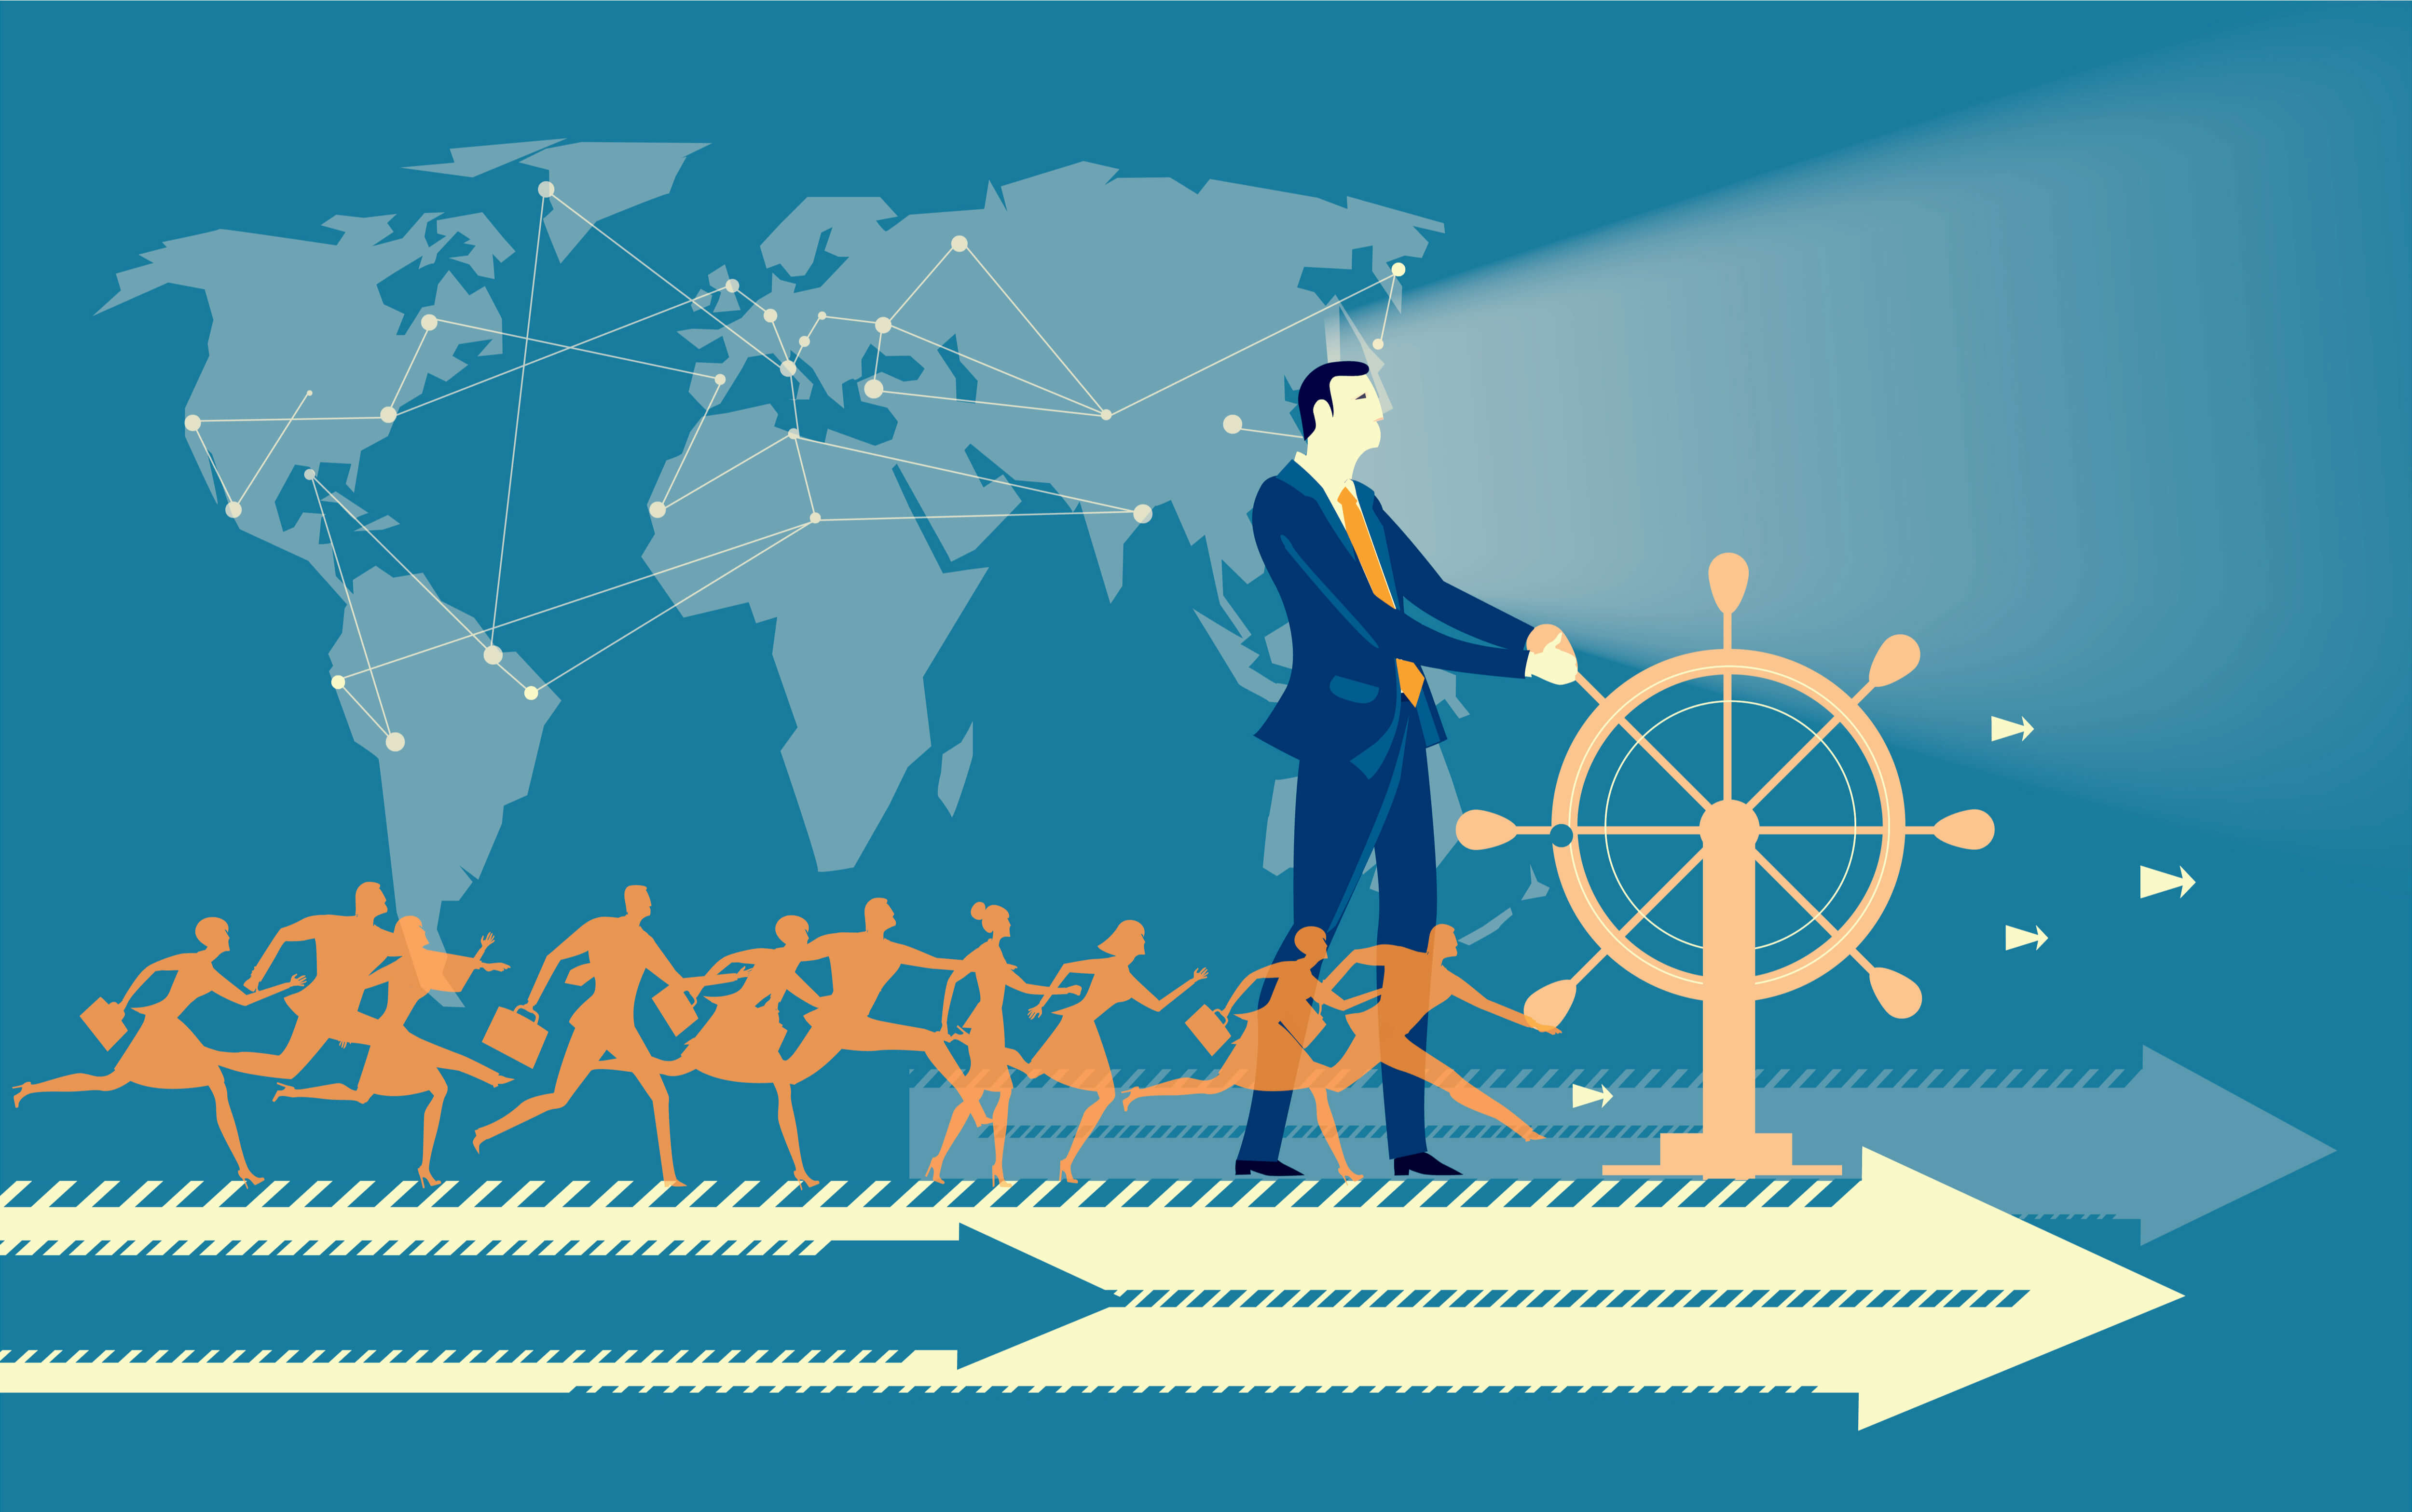 Business leader steering a ship with employees on board